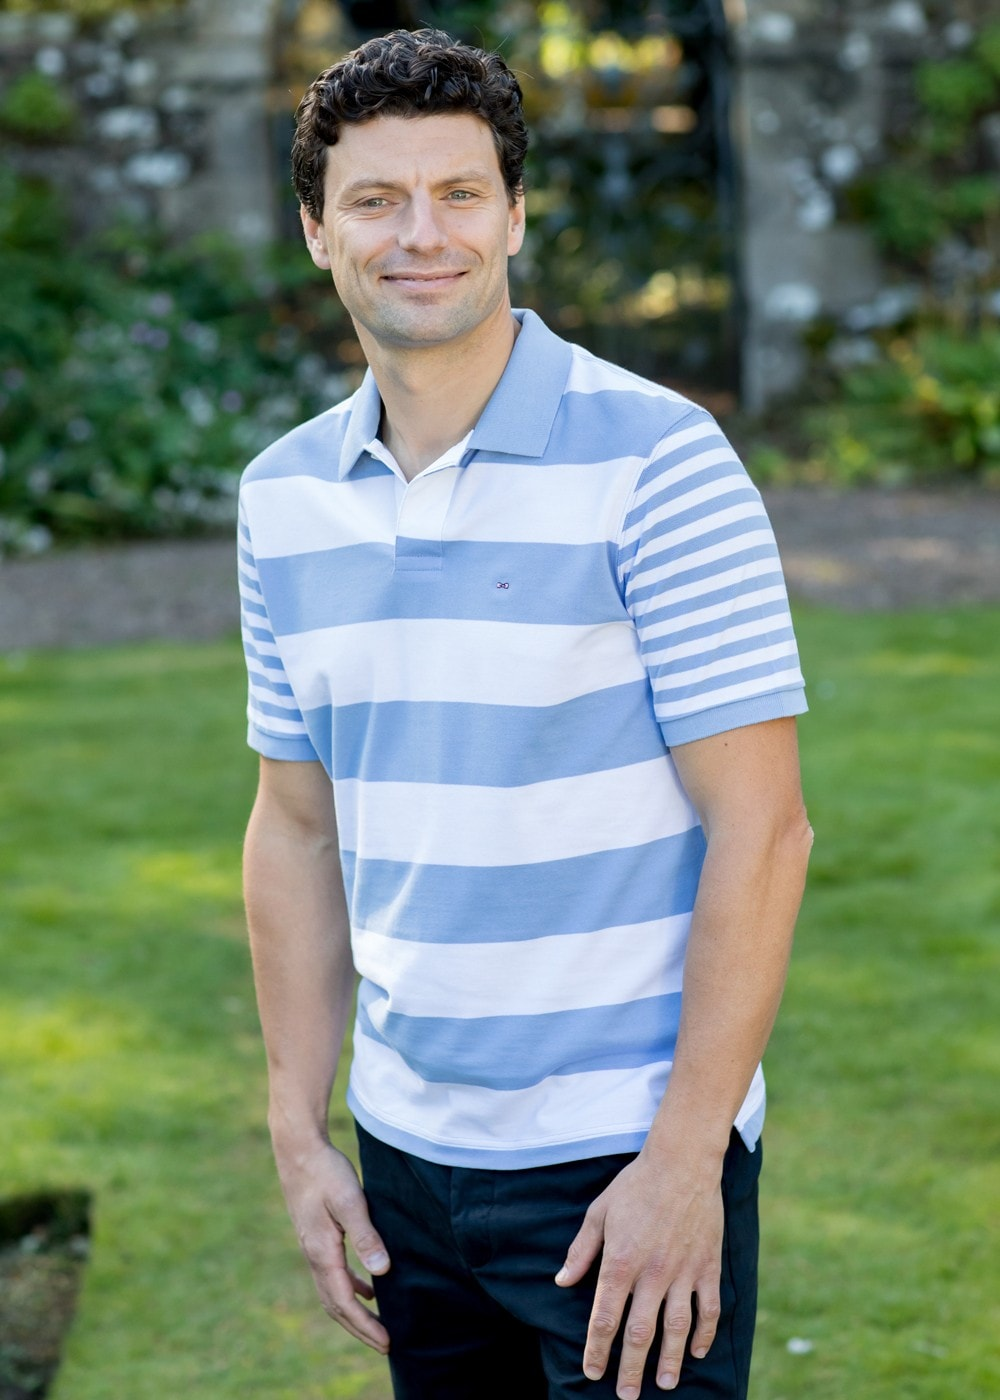 dfa13f316f1 Eden Park Double Stripe Polo Shirt - Mens from A Hume UK